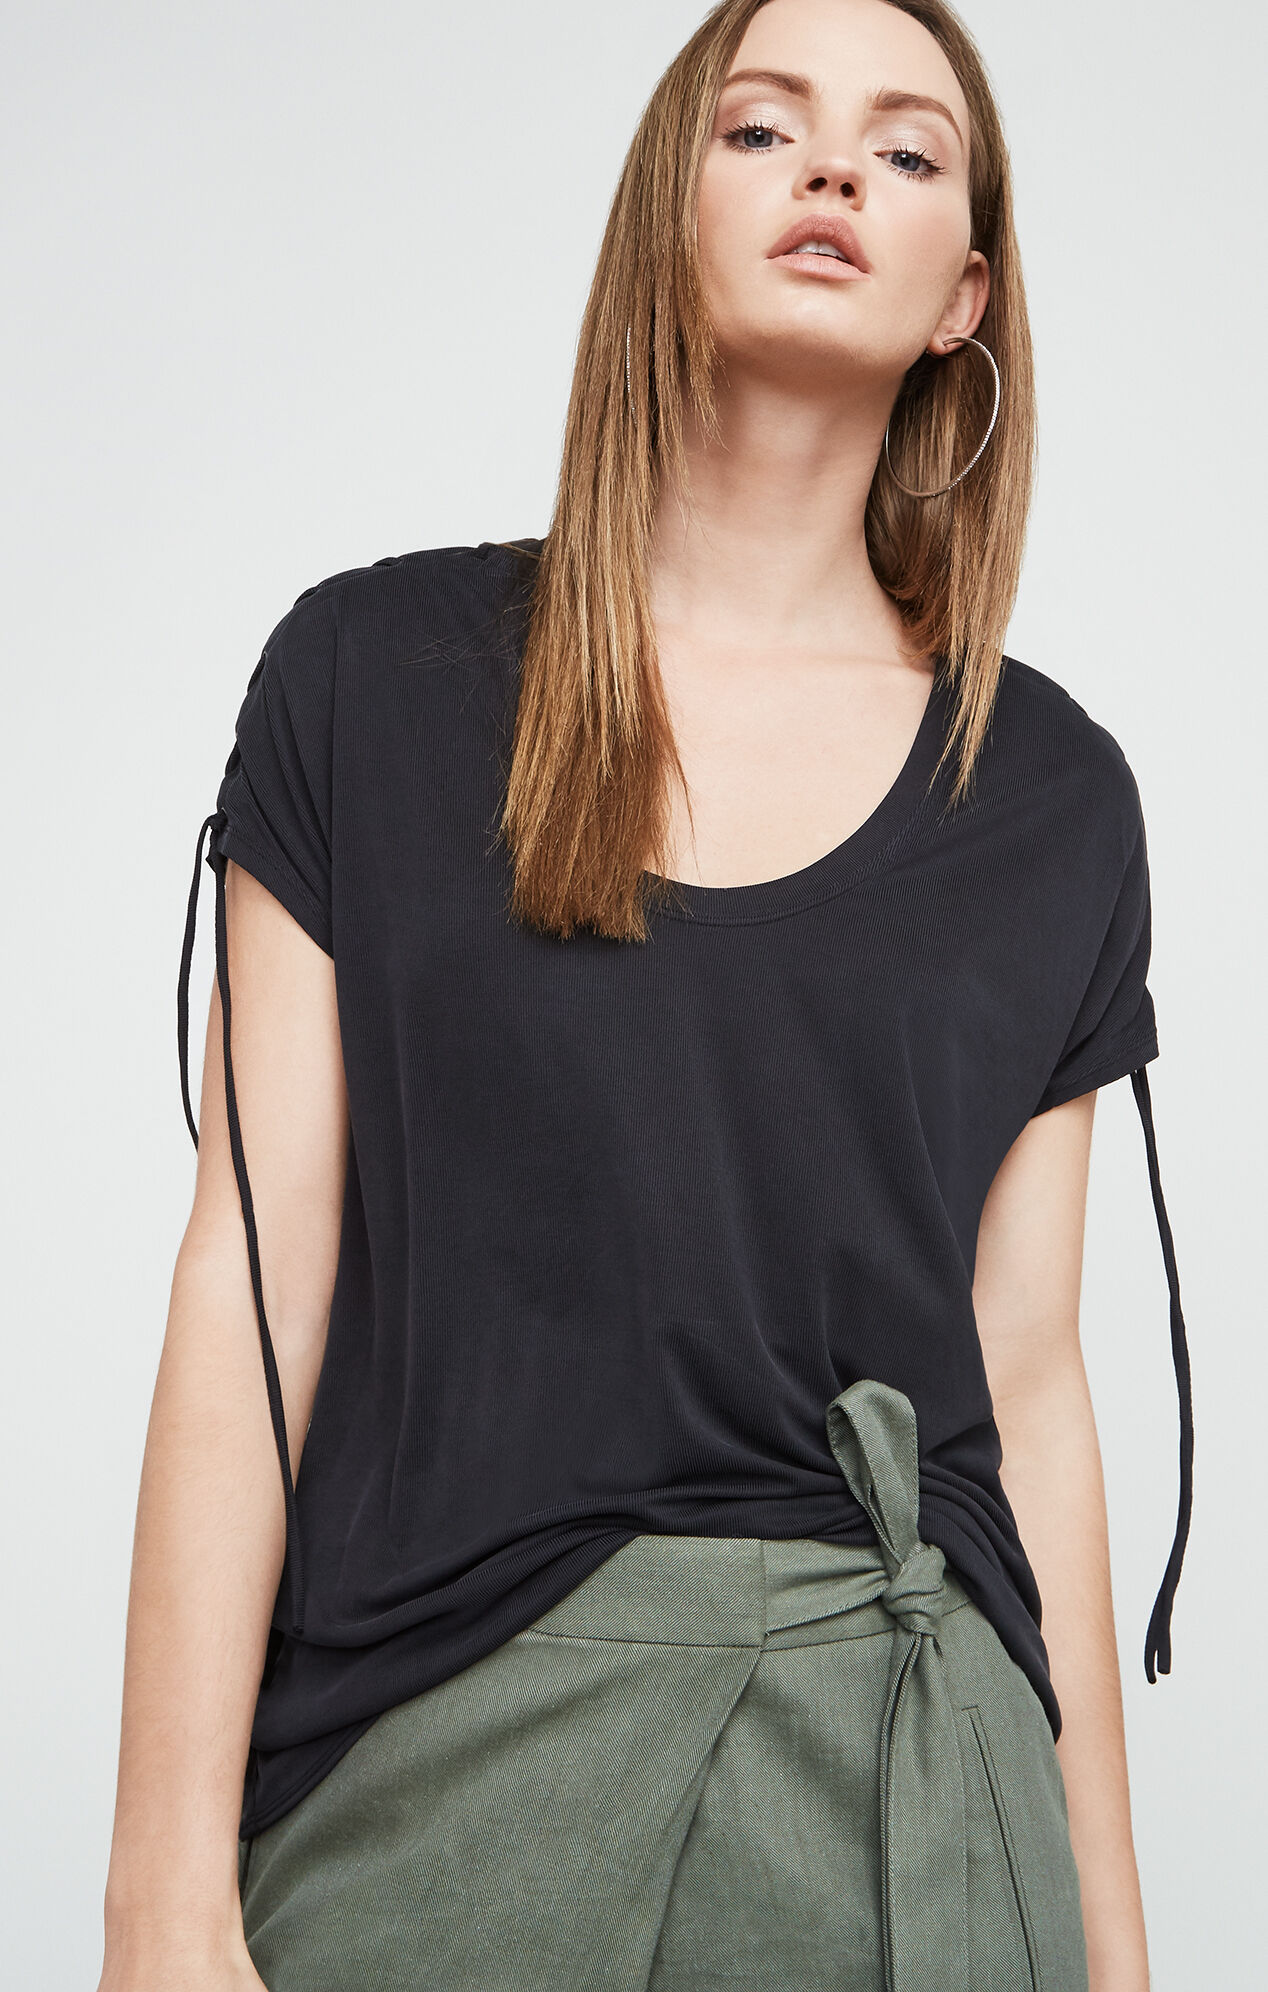 Kadie Lace-Up Top